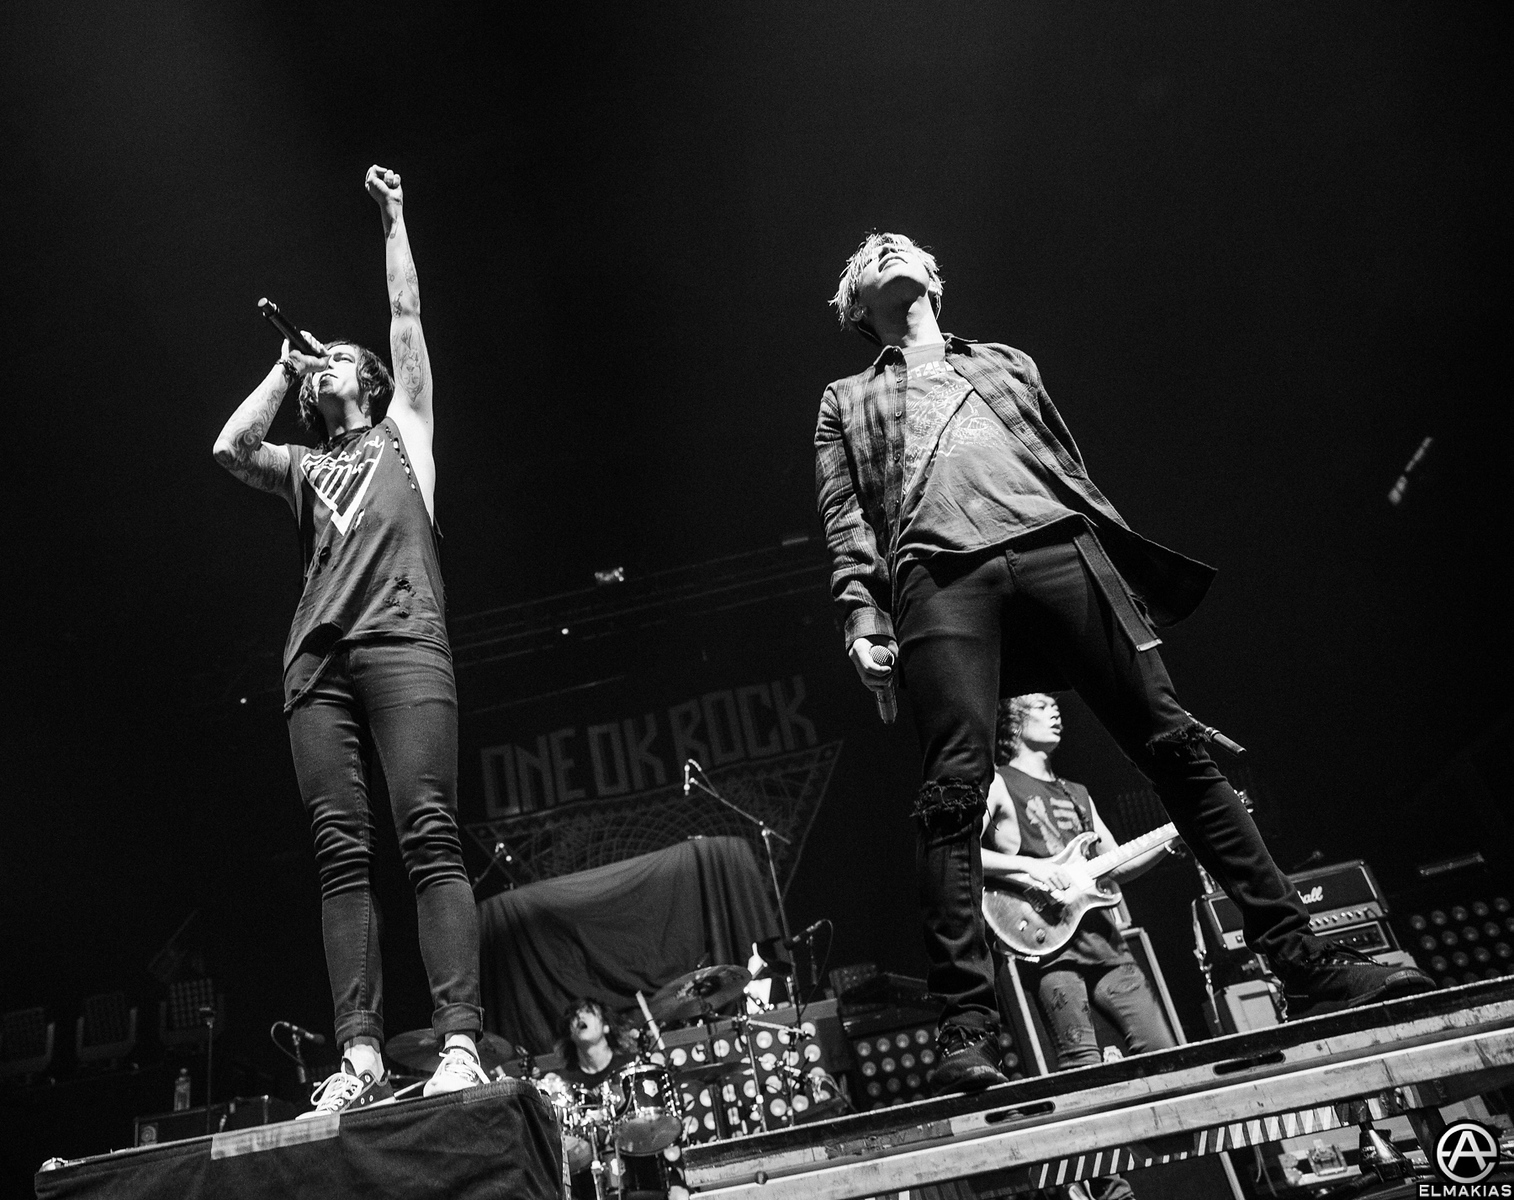 Kellin Quinn and Takahiro Moriuchi during the Back To The Future Hearts Tour